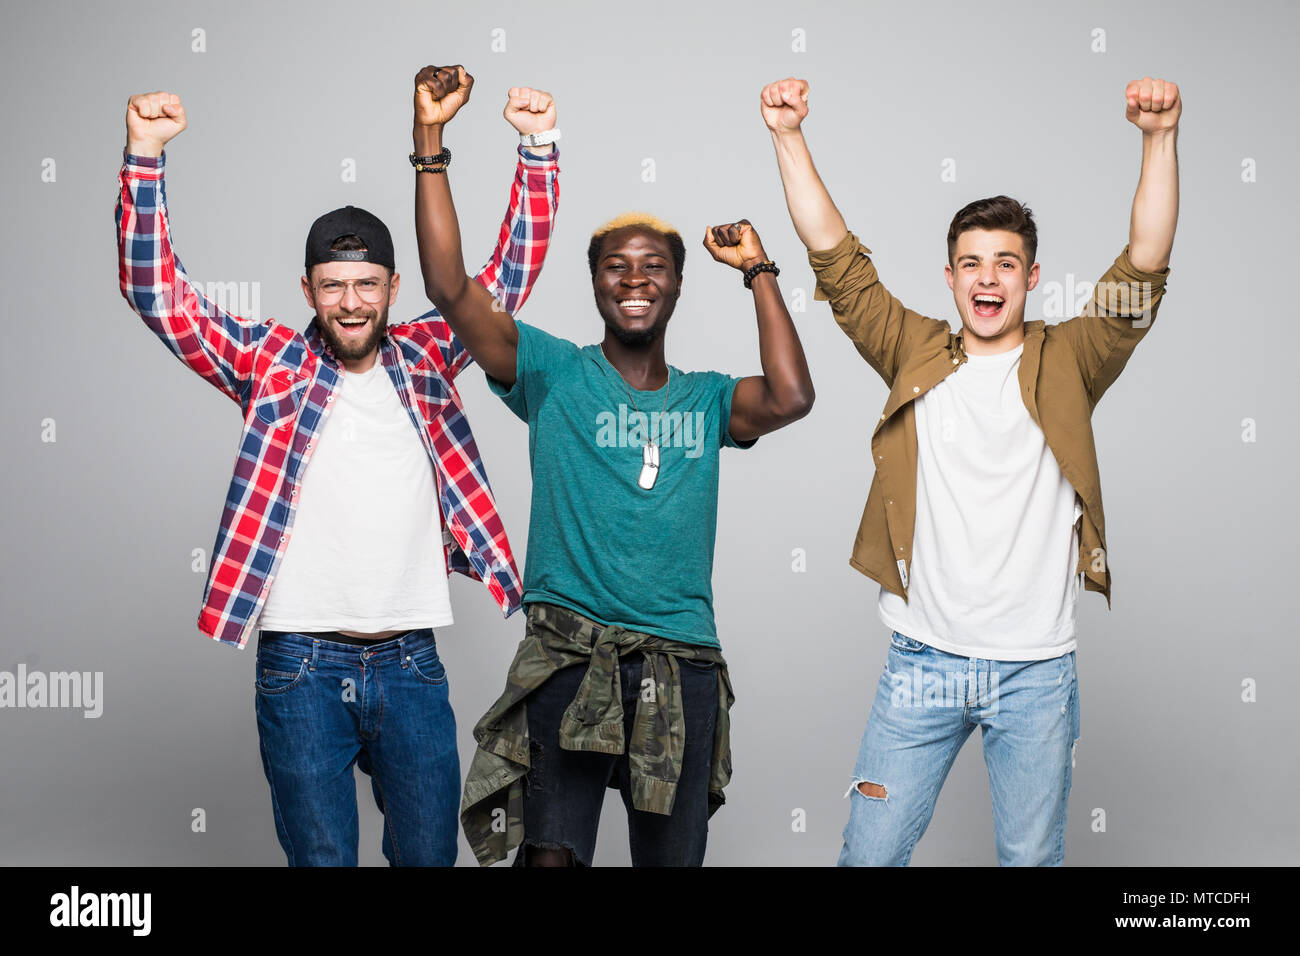 Three young cheery men football fans celebrating isolated over yellow background - Stock Image